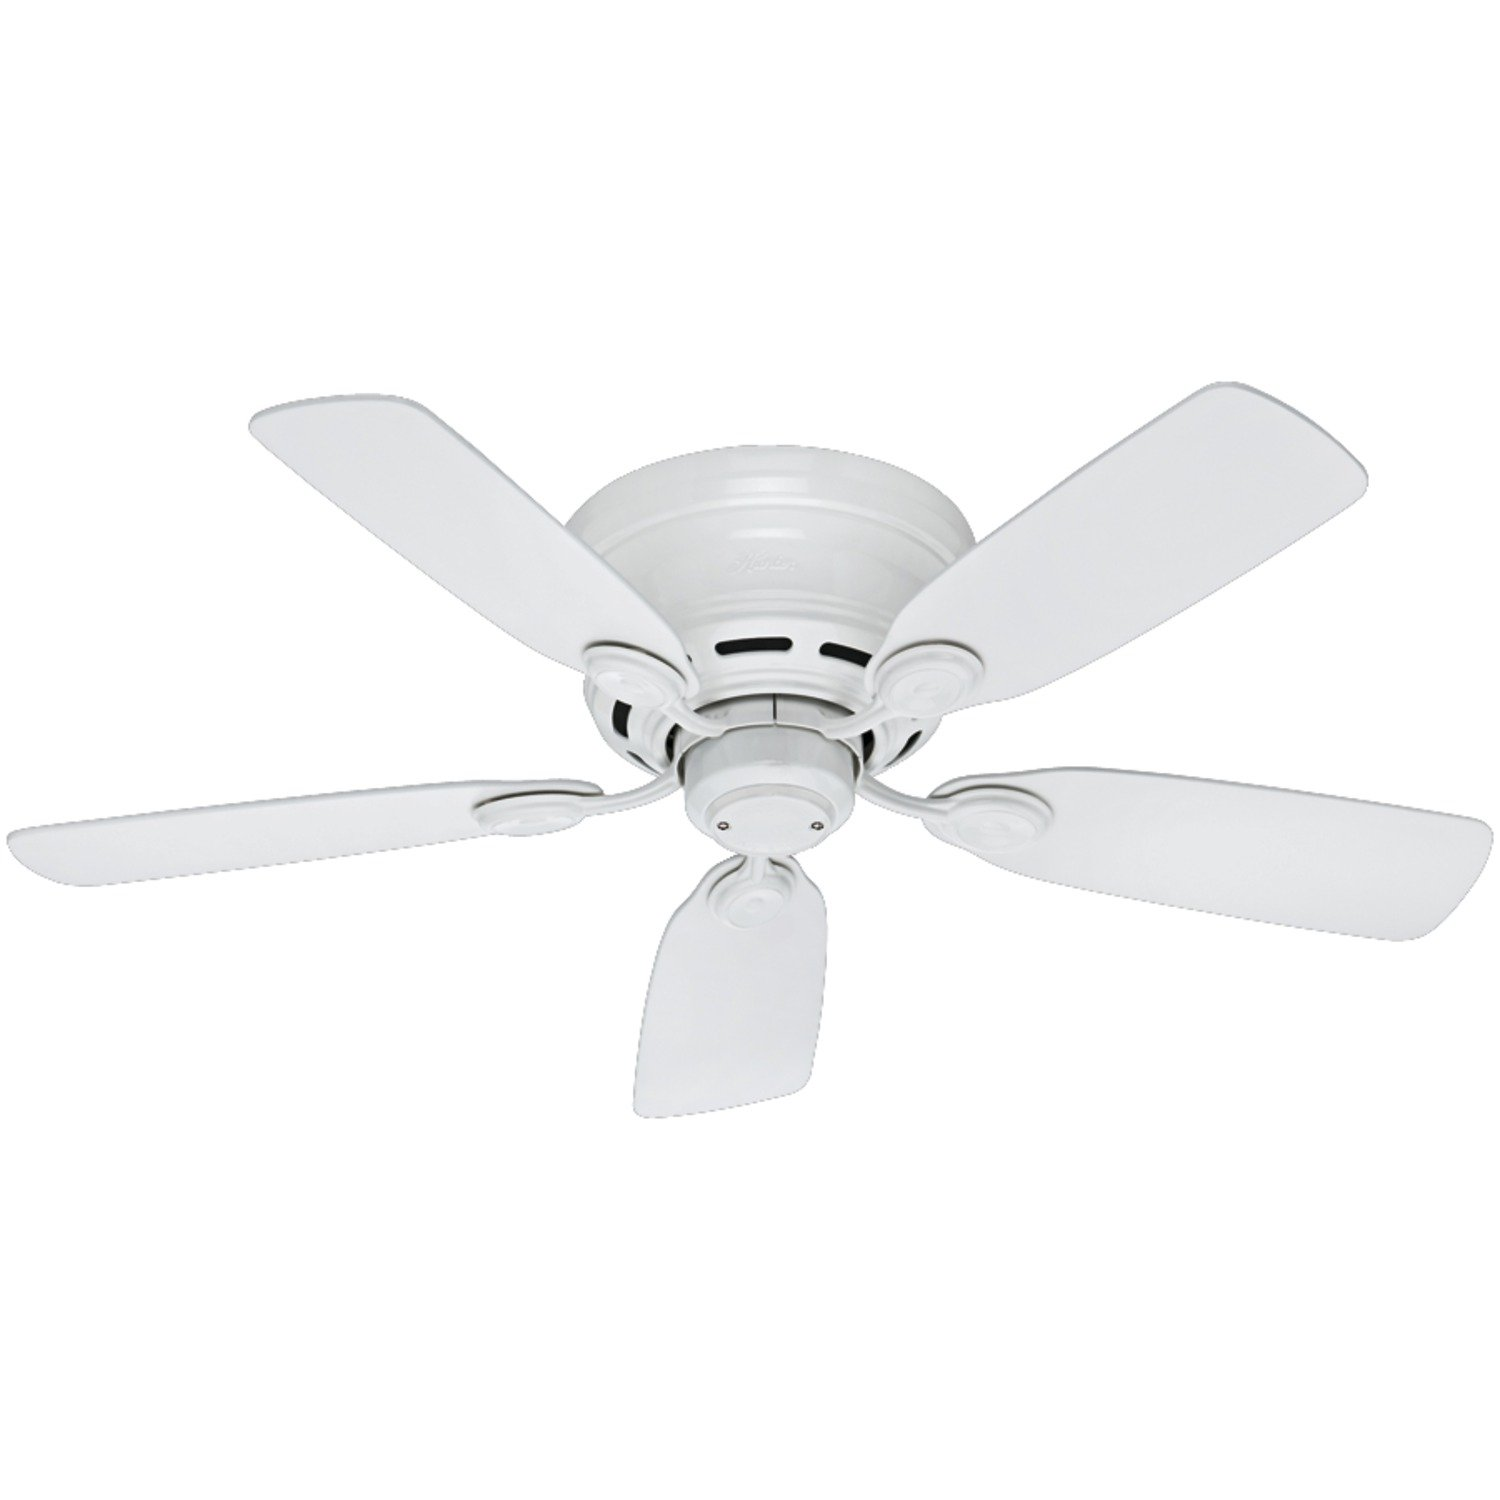 Hunter 51059 low profile iv 5 blade ceiling fan 42 inch white hunter 51059 low profile iv 5 blade ceiling fan 42 inch white amazon aloadofball Images